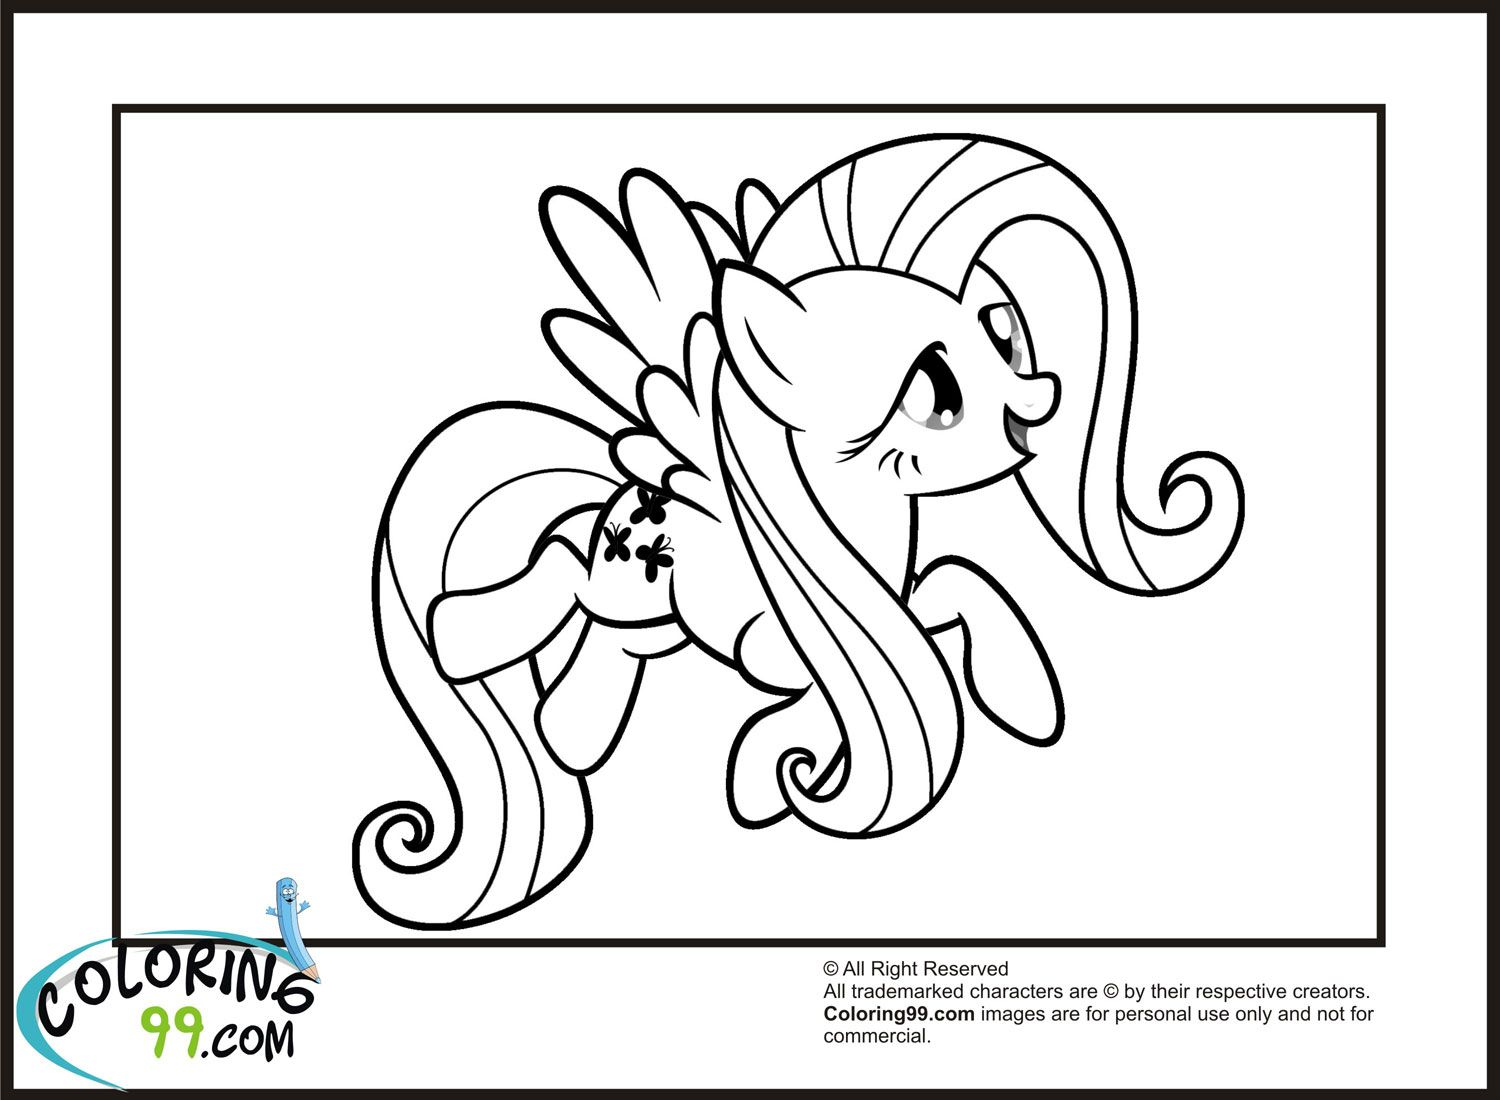 mlp-flying-fluttershy-coloring-pages.jpg (1500×1100) | Coloring 4 ...